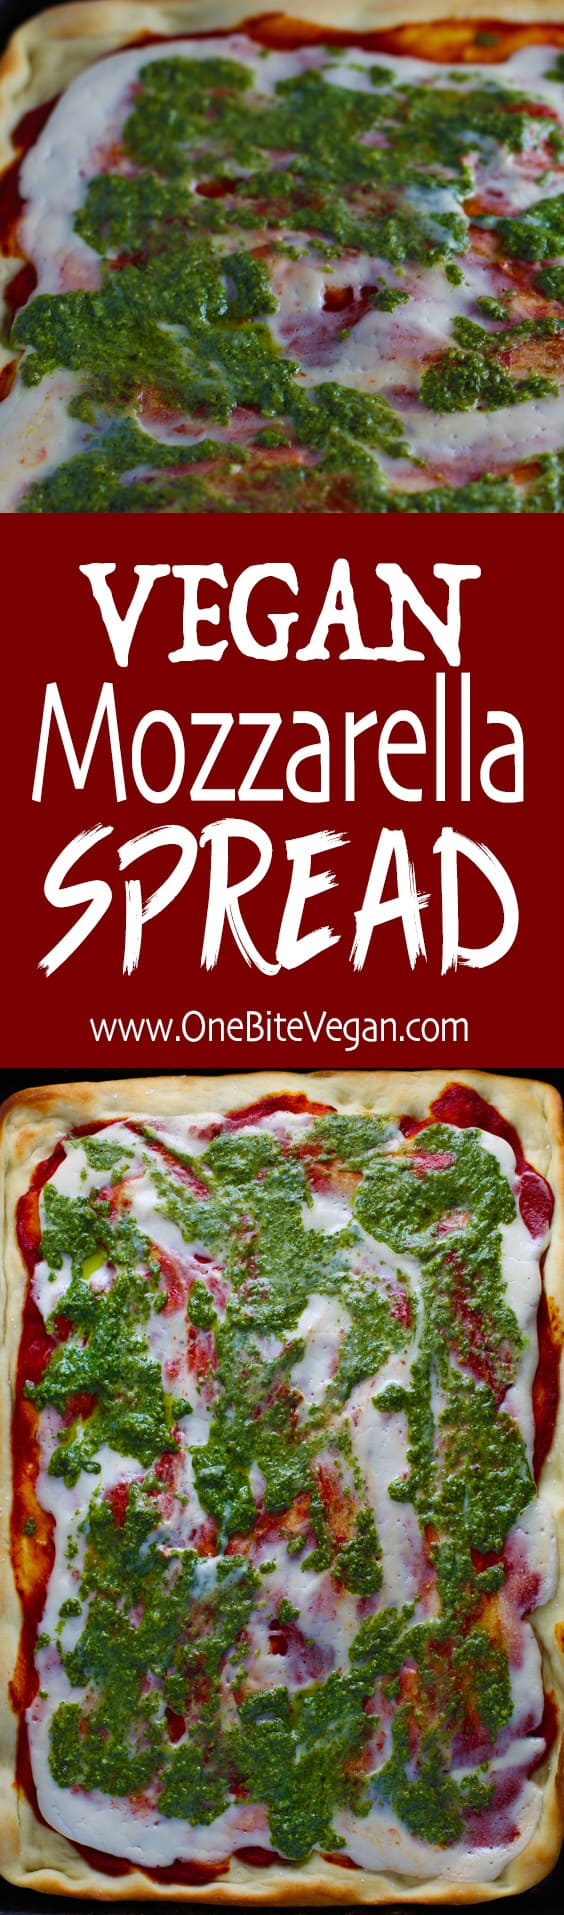 Vegan mozzarella spread. Mozzarella style flavored vegan cheese made with cashews and spices. It has a beautiful sauce-like consistency and is perfect on top of pizza, sandwiches, or pasta.